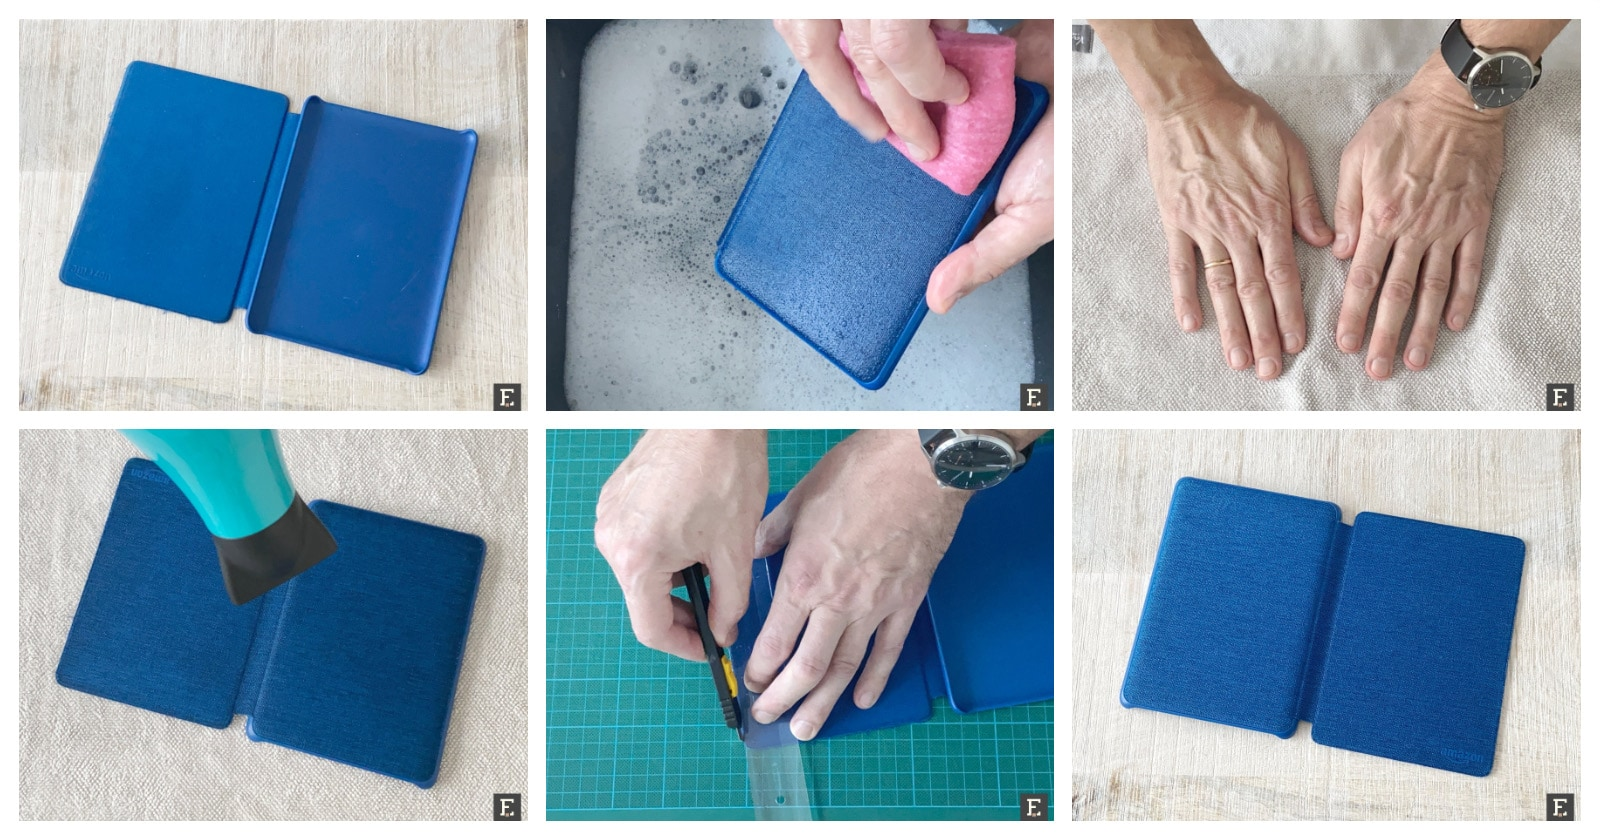 How to clean fabric Kindle case quickly safely